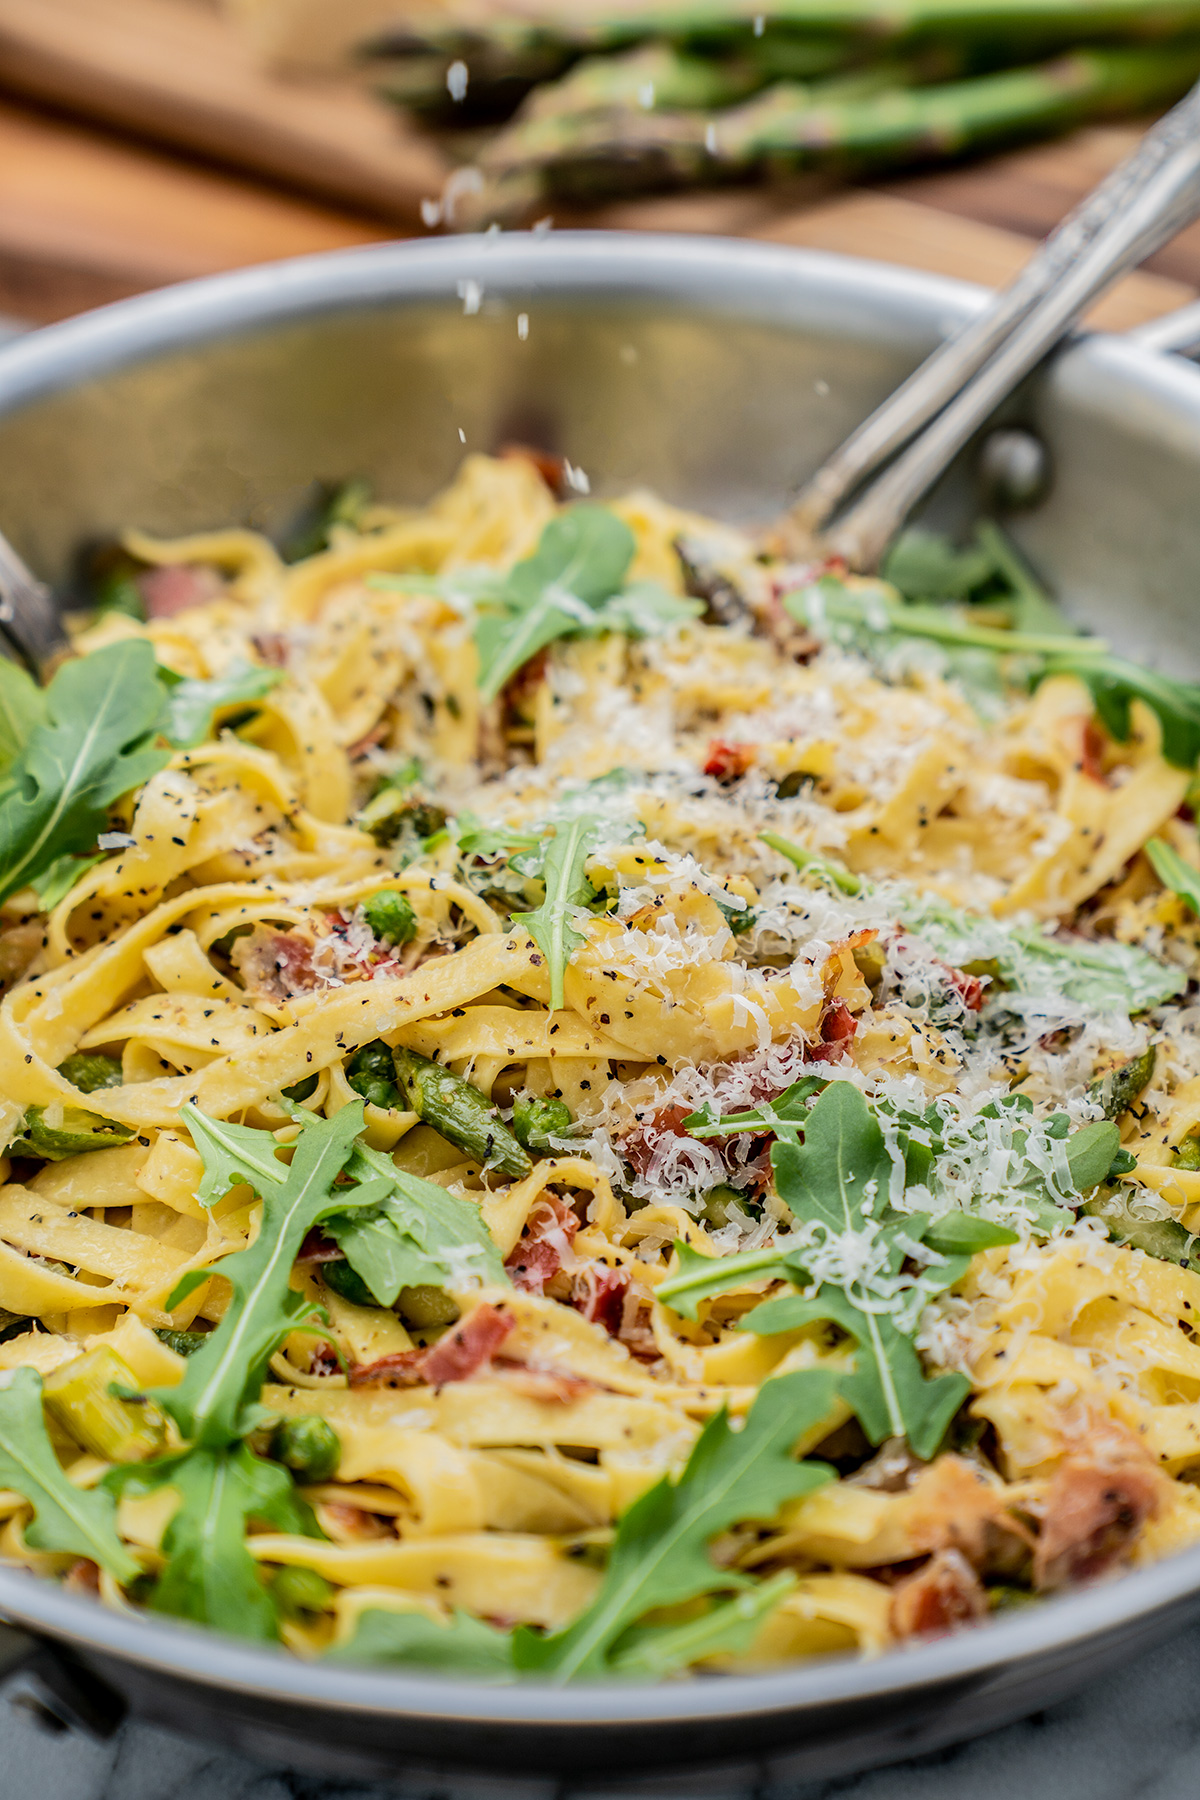 Bacon-and-Asparagus-Cacio-e-Pepe